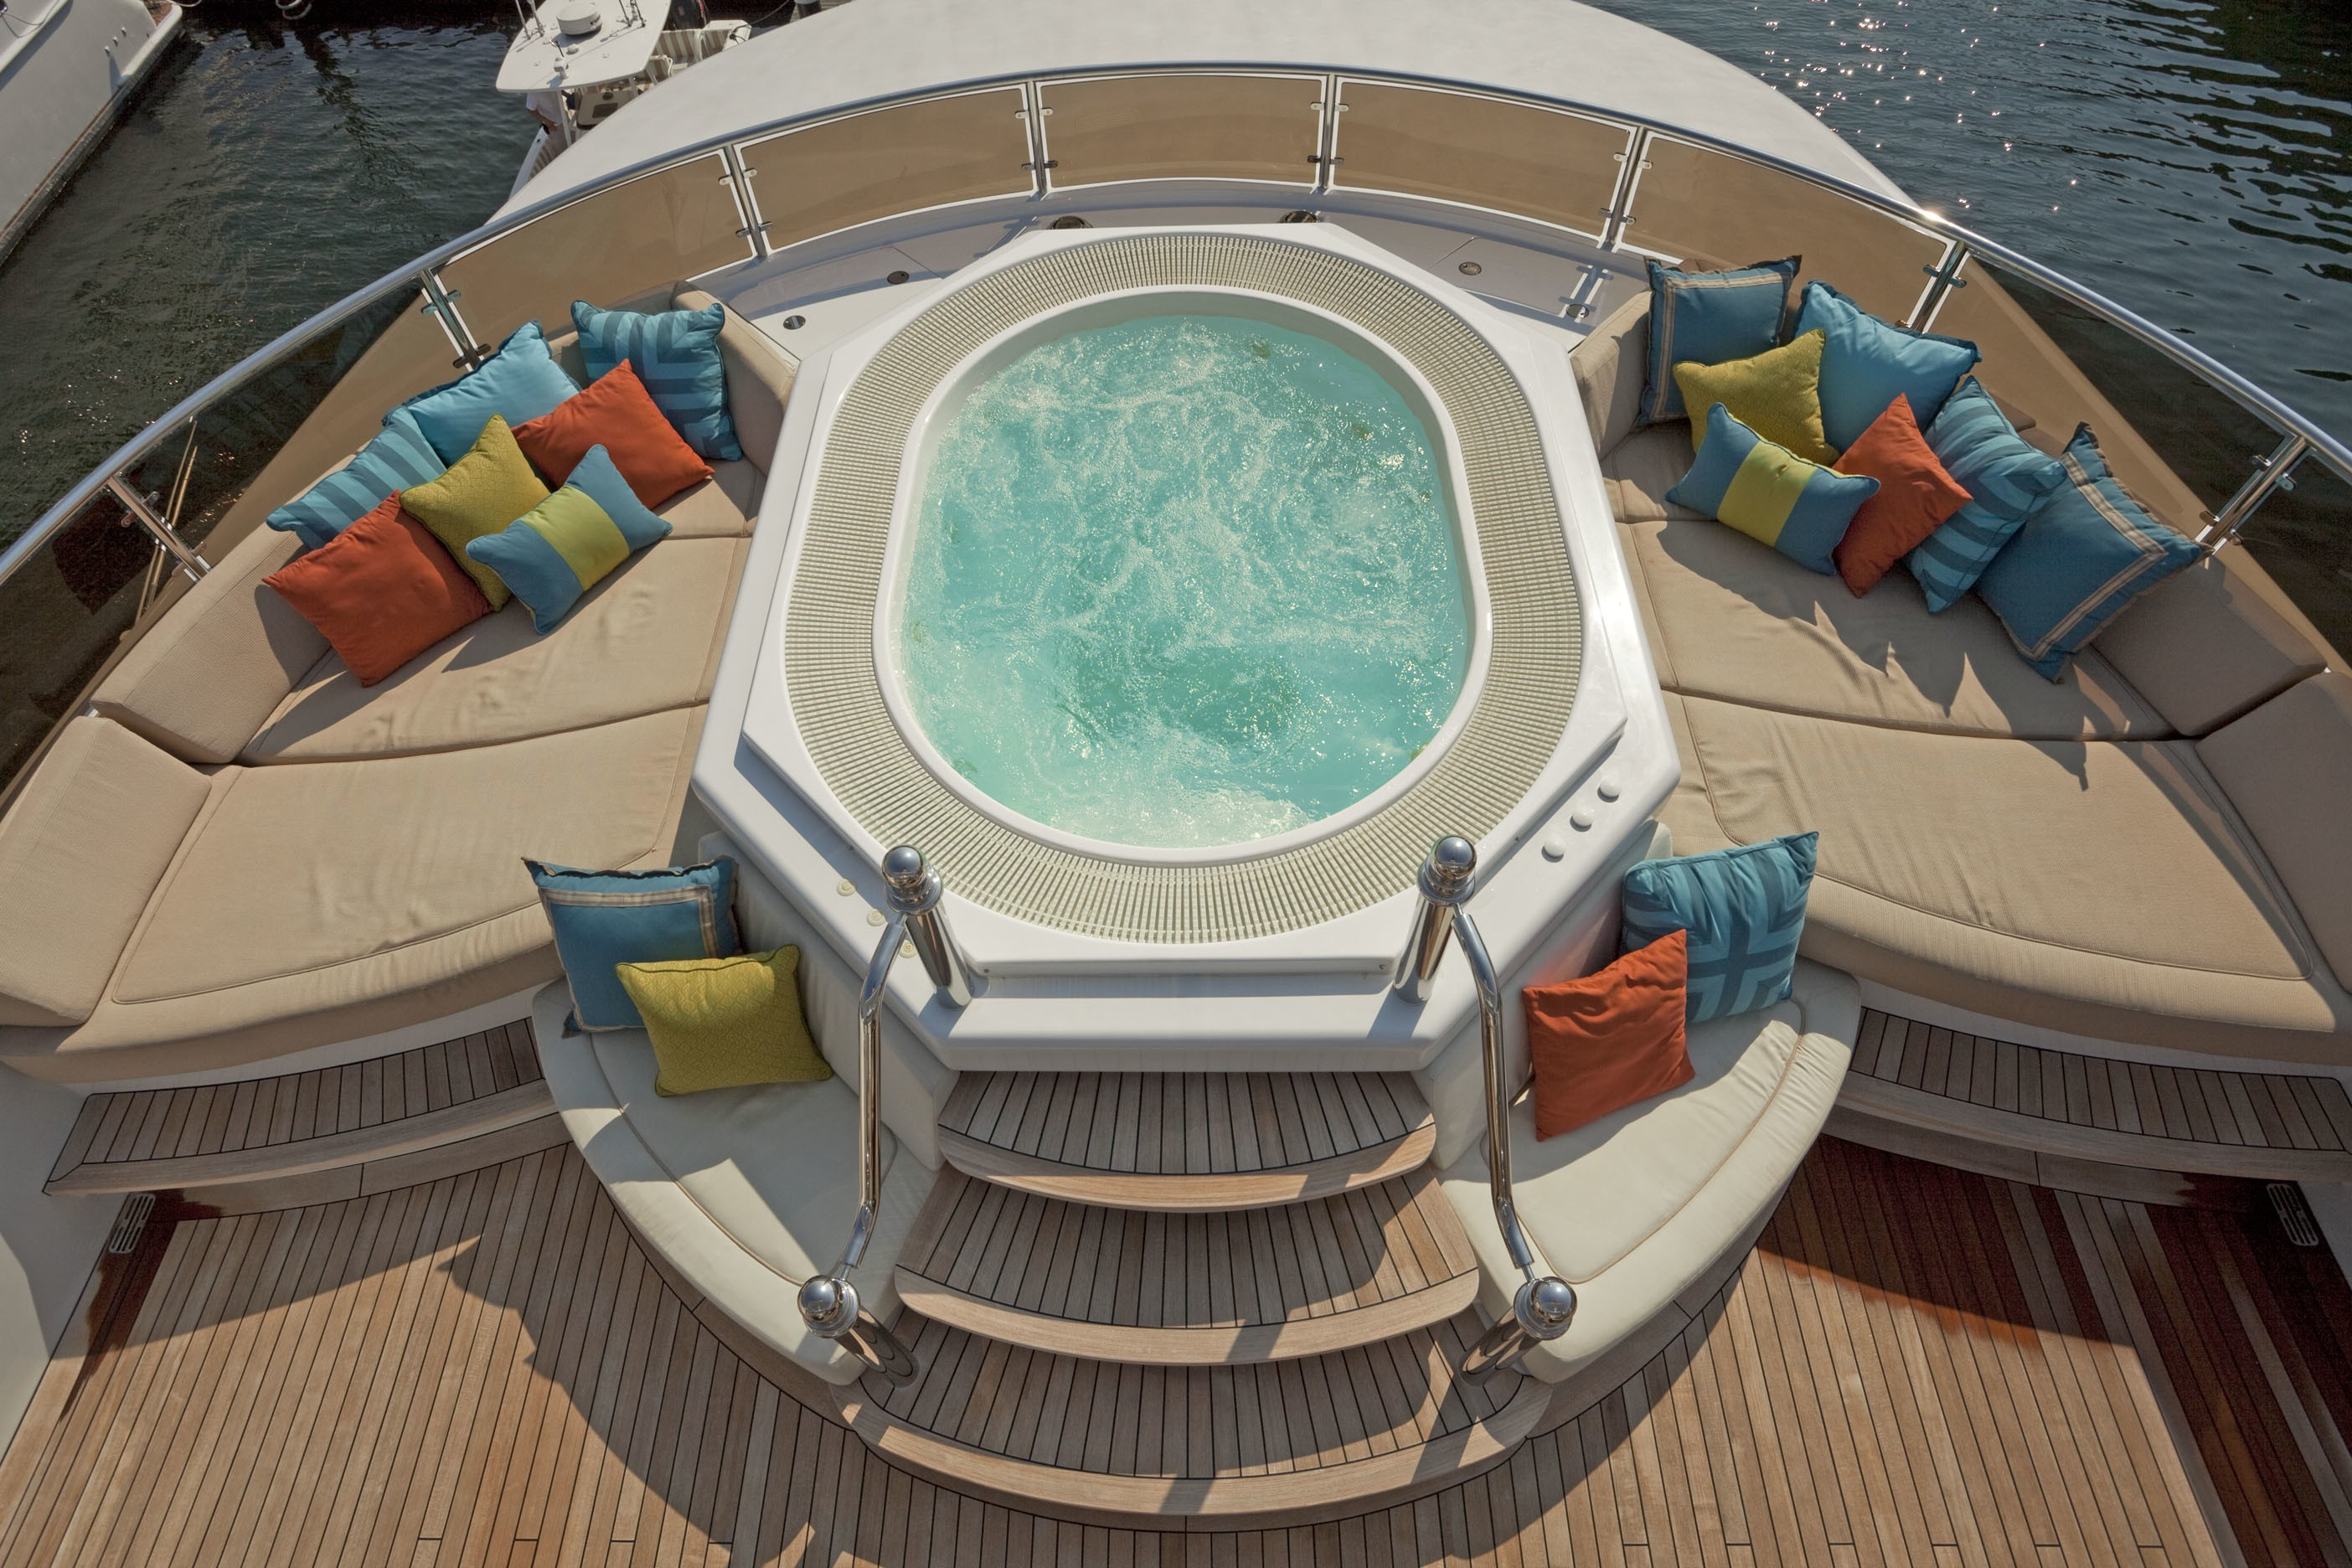 Jacuzzi Pool On Yacht COCO VIENTE